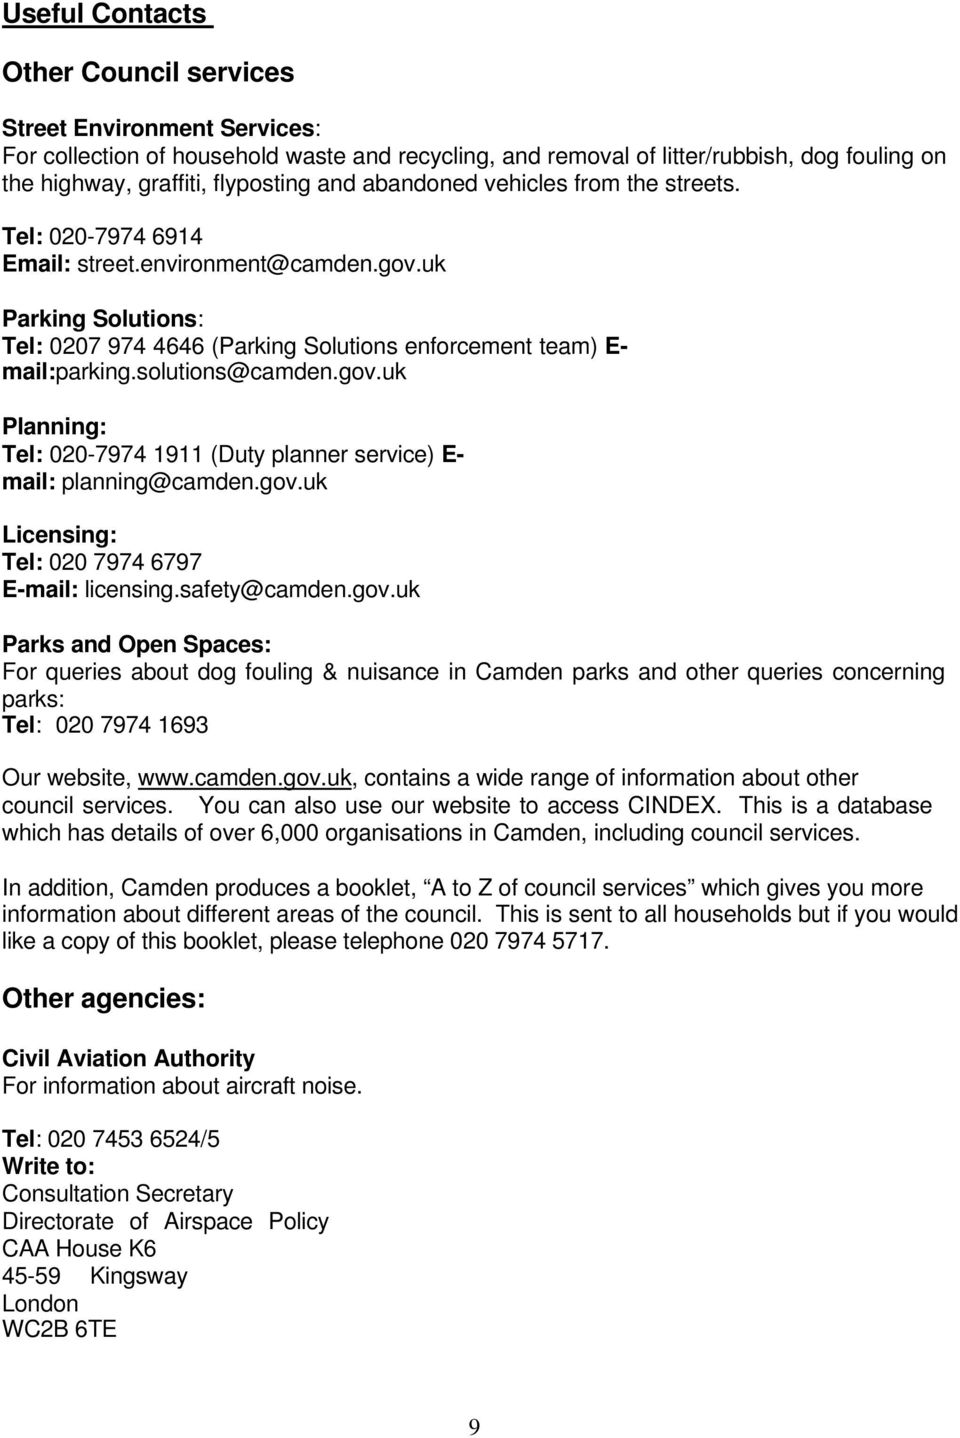 solutions@camden.gov.uk Planning: Tel: 020-7974 1911 (Duty planner service) E- mail: planning@camden.gov.uk Licensing: Tel: 020 7974 6797 E-mail: licensing.safety@camden.gov.uk Parks and Open Spaces: For queries about dog fouling & nuisance in Camden parks and other queries concerning parks: Tel: 020 7974 1693 Our website, www.